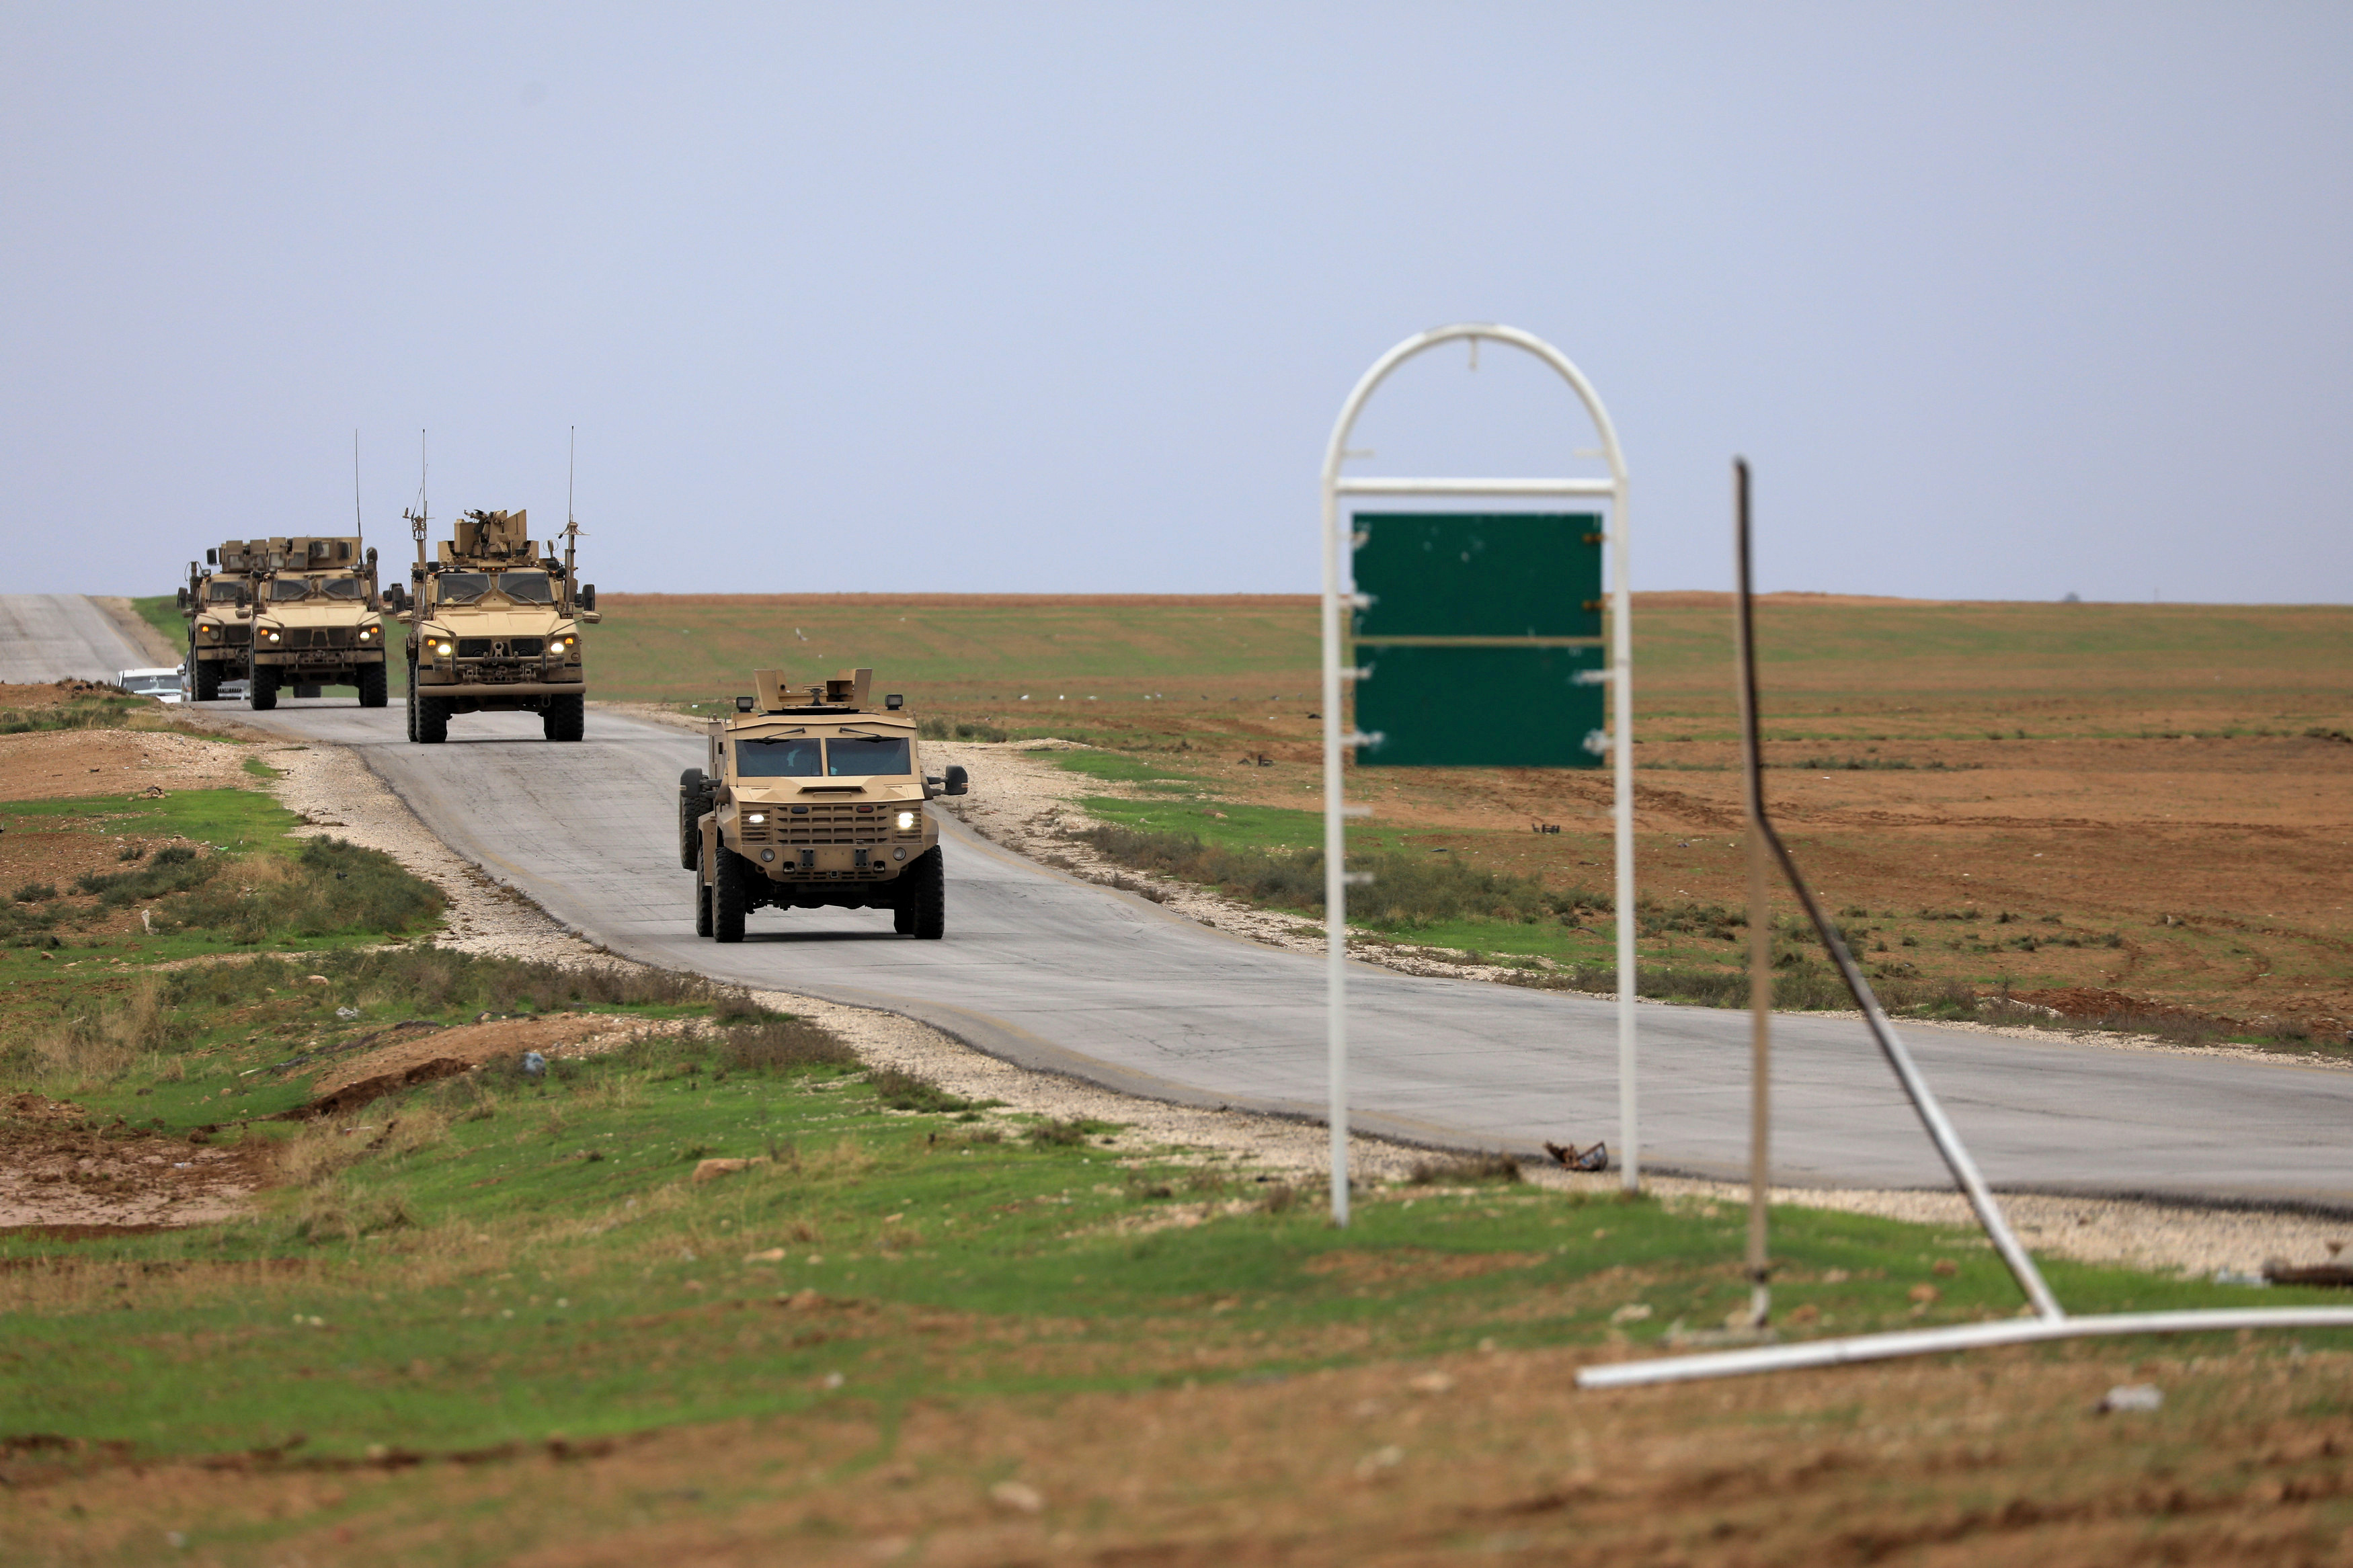 FILE PHOTO: U.S. troops patrol near Turkish border in Hasakah, Syria, November 4, 2018. REUTERS/Rodi Said/File Photo